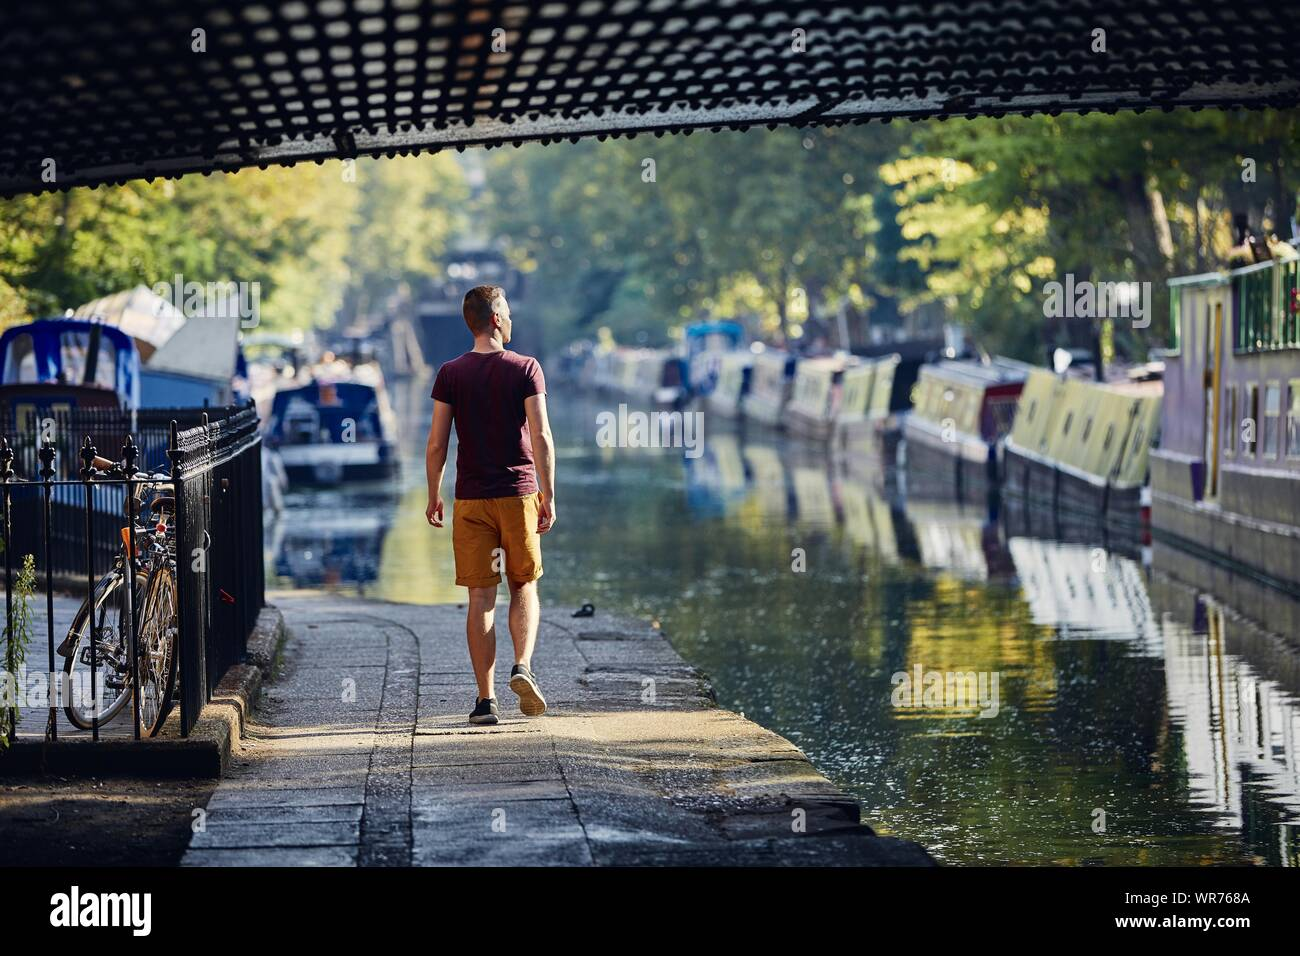 Young man walking on waterfront of Regents canal with boats. Little Venice in London, United Kingdom. Stock Photo